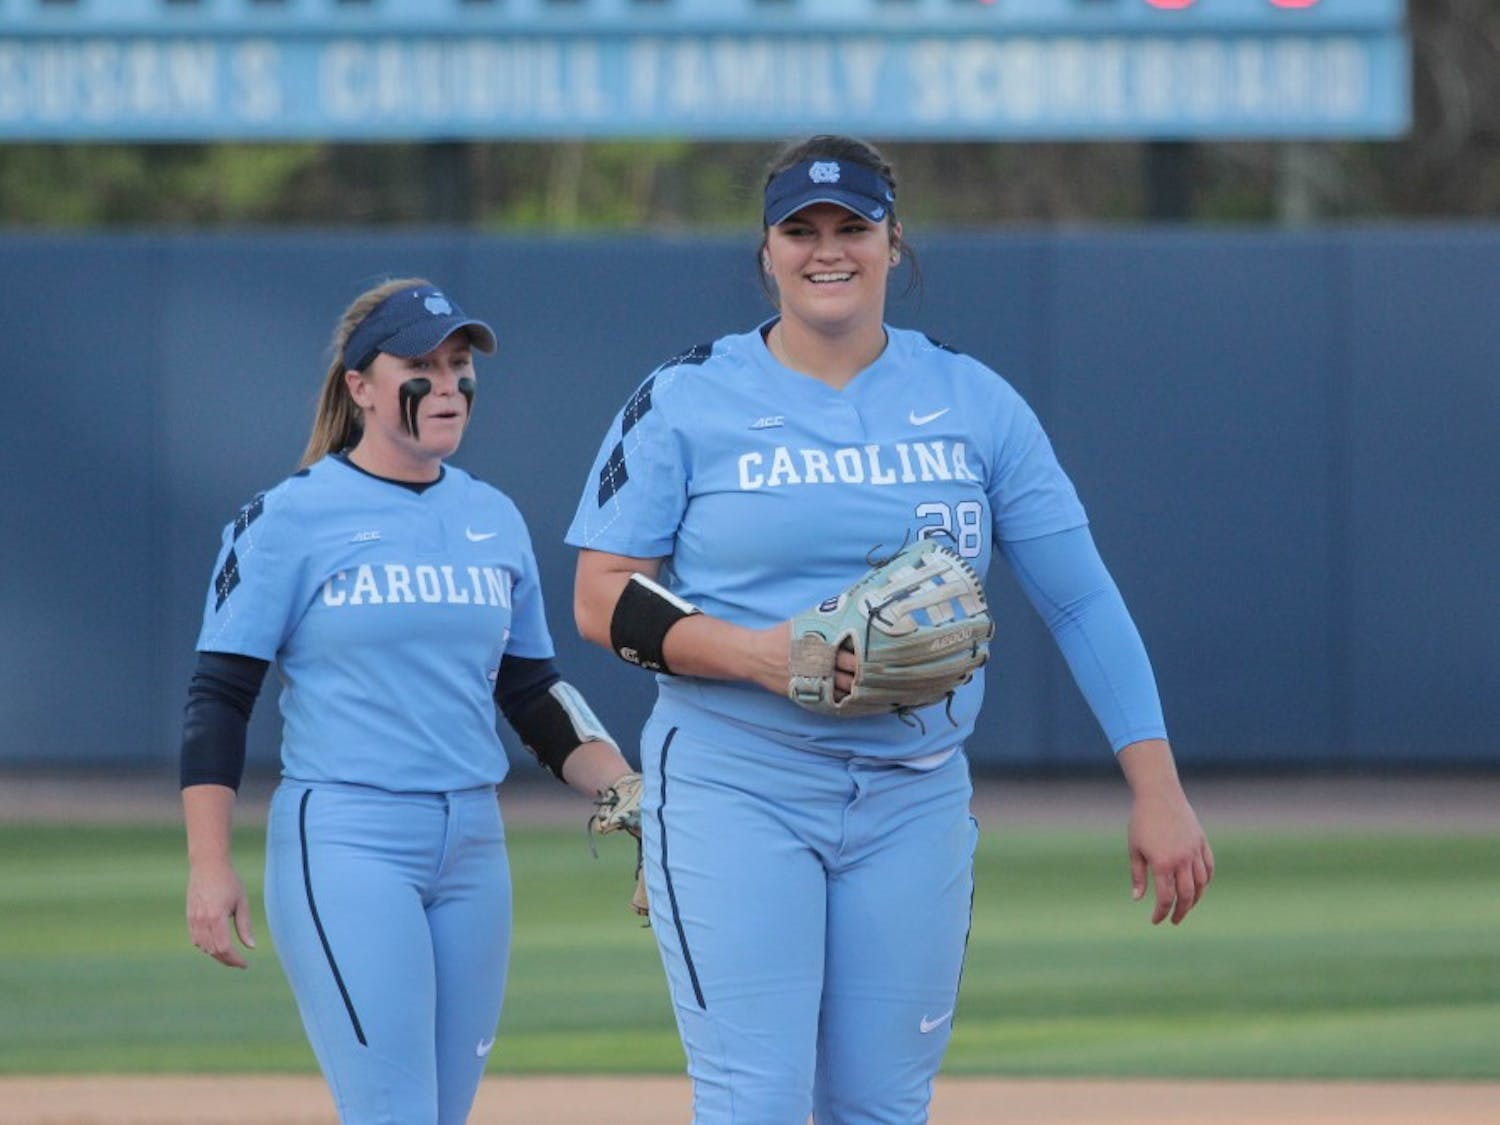 Senior Taylor Wike (7) and sophomore Brittany Pickett (28) joke during a game against N.C. State on April 13 at Anderson Stadium.